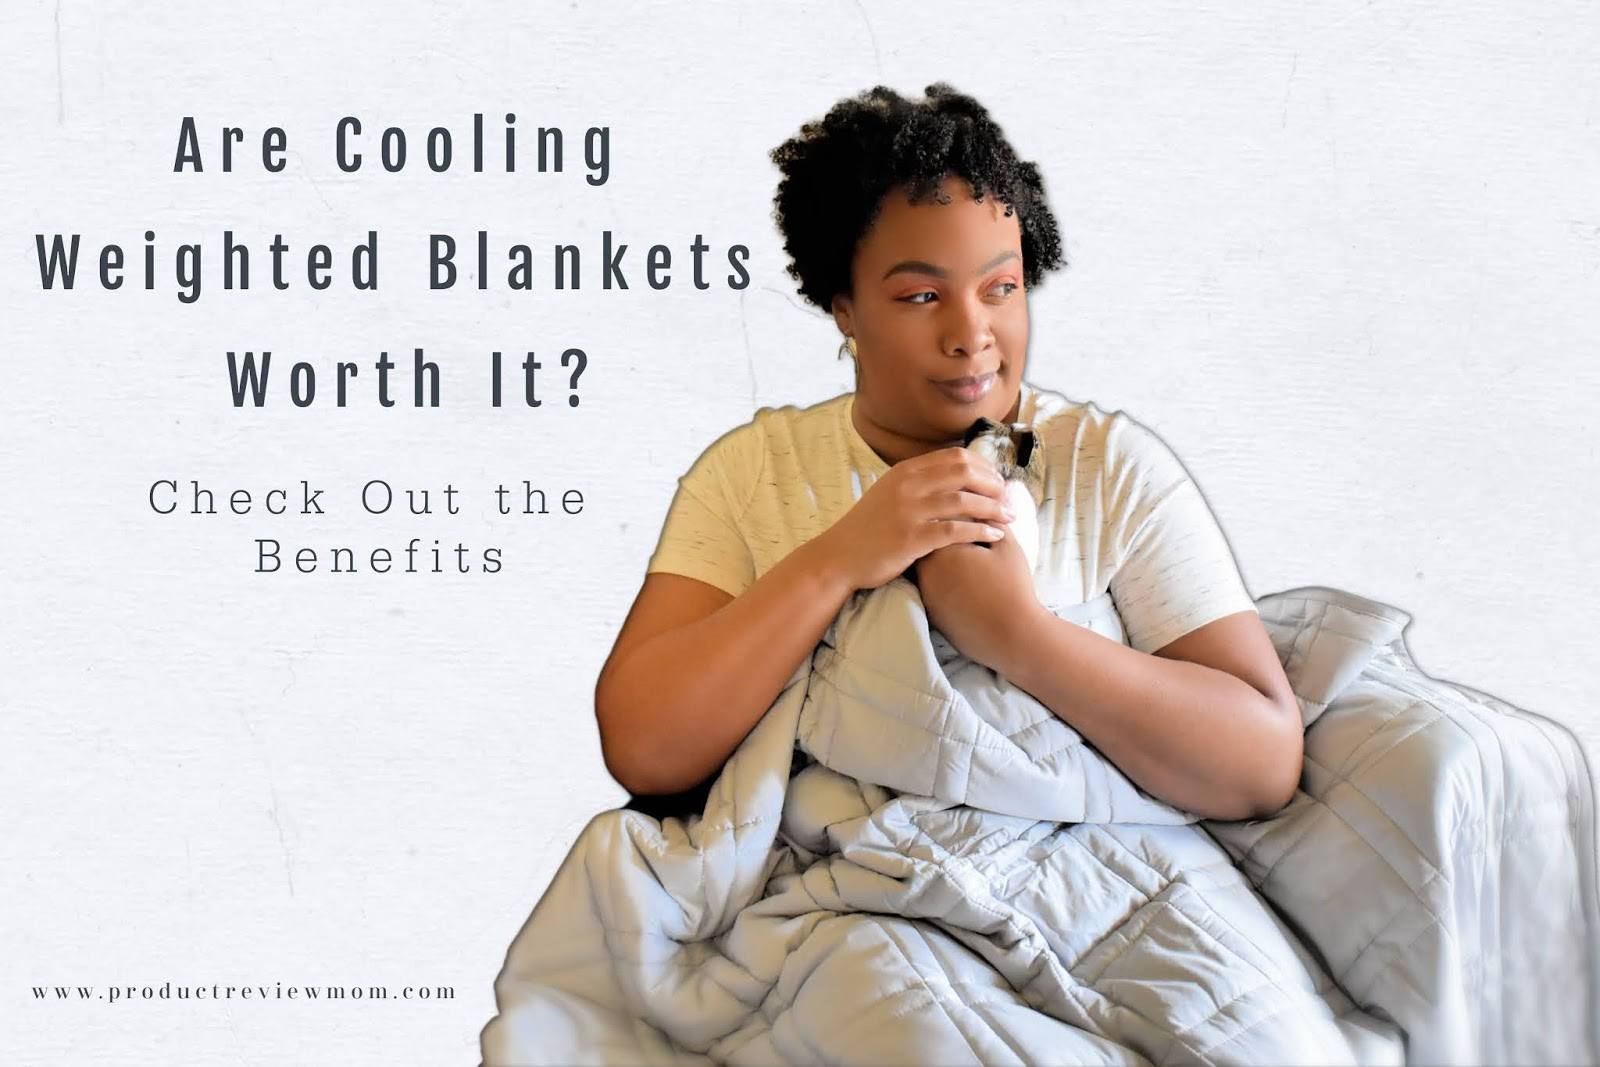 Are Cooling Weighted Blankets Worth It?  Check Out the Benefits